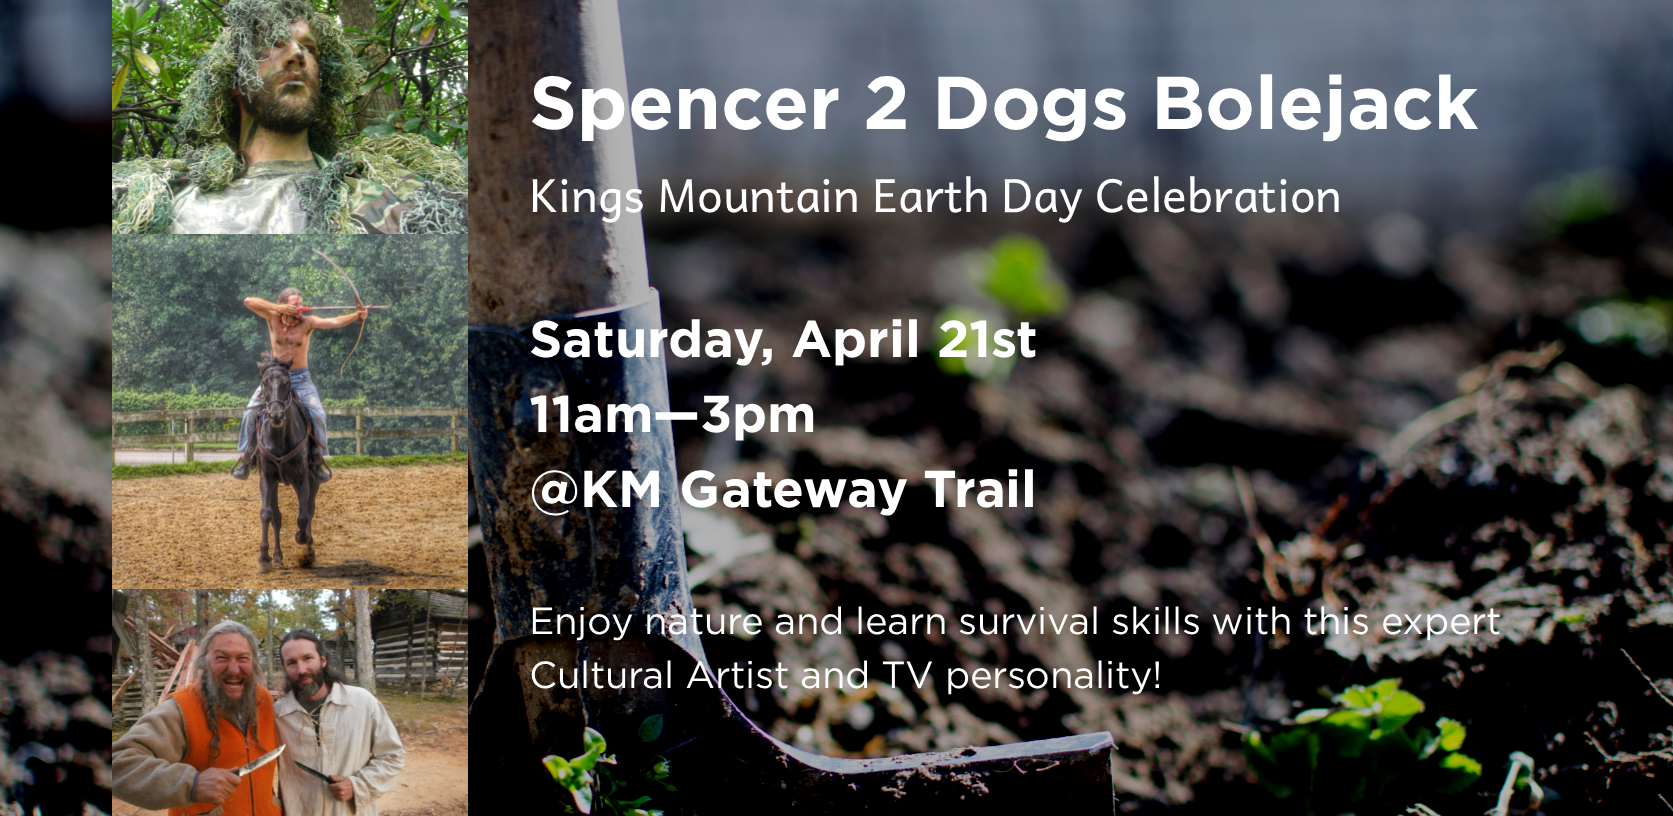 Spencer 2 Dogs Bolejack: Kings Mountain Earth Day Celebration